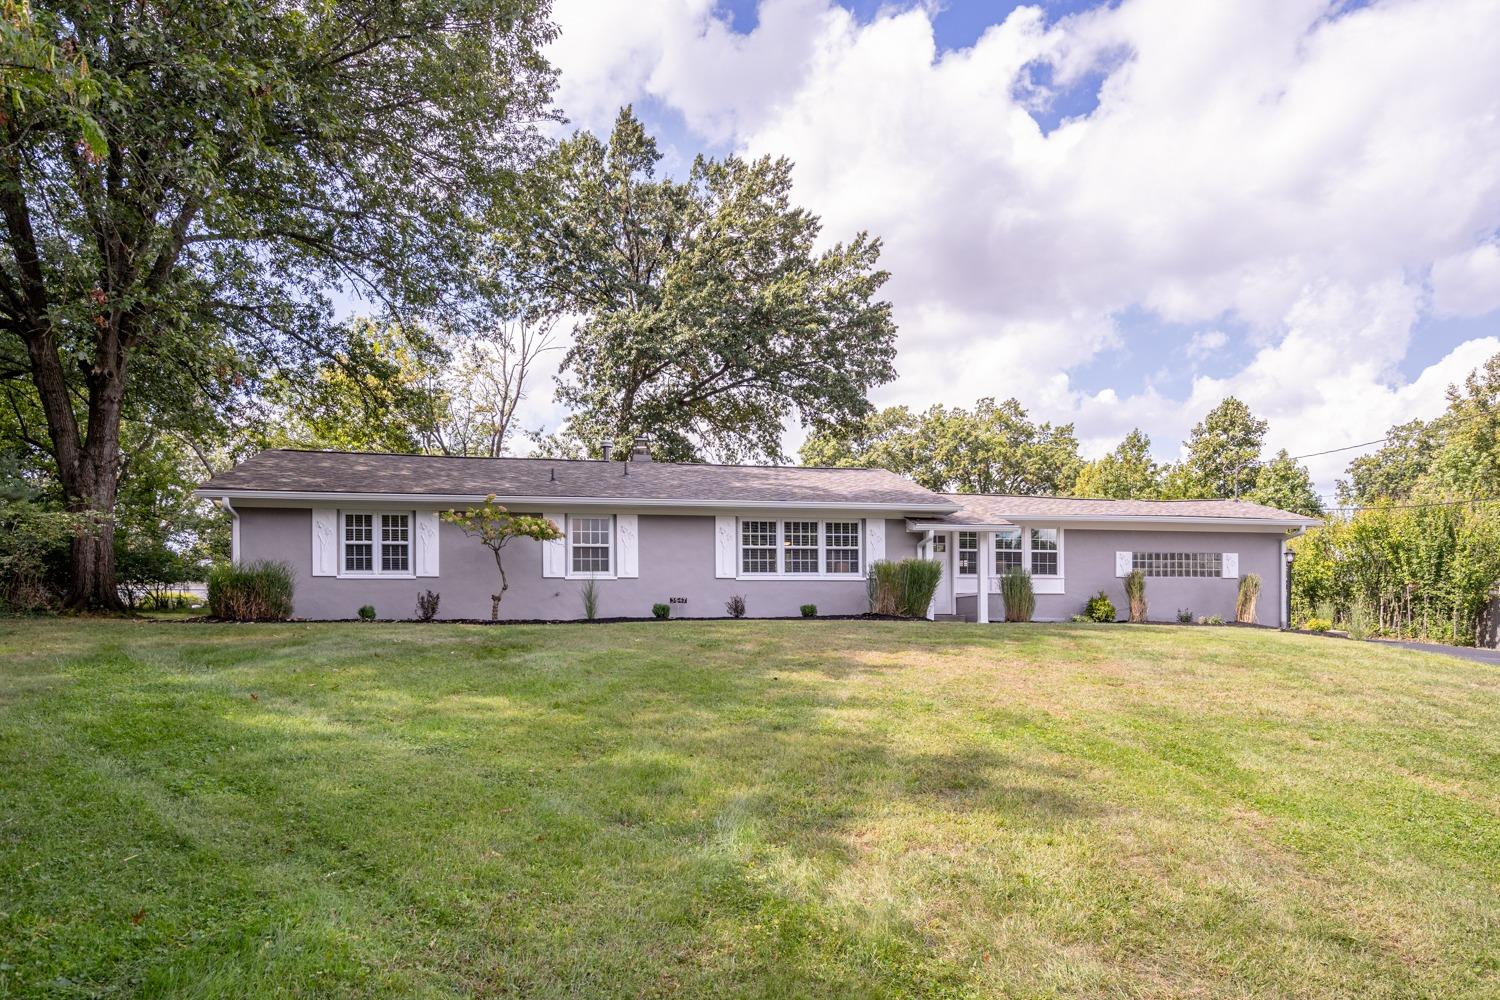 3647 Langhorst Court, Sycamore Twp, Ohio 45236, 2 Bedrooms Bedrooms, 8 Rooms Rooms,1 BathroomBathrooms,Single Family Residence,For Sale,Langhorst,1715933